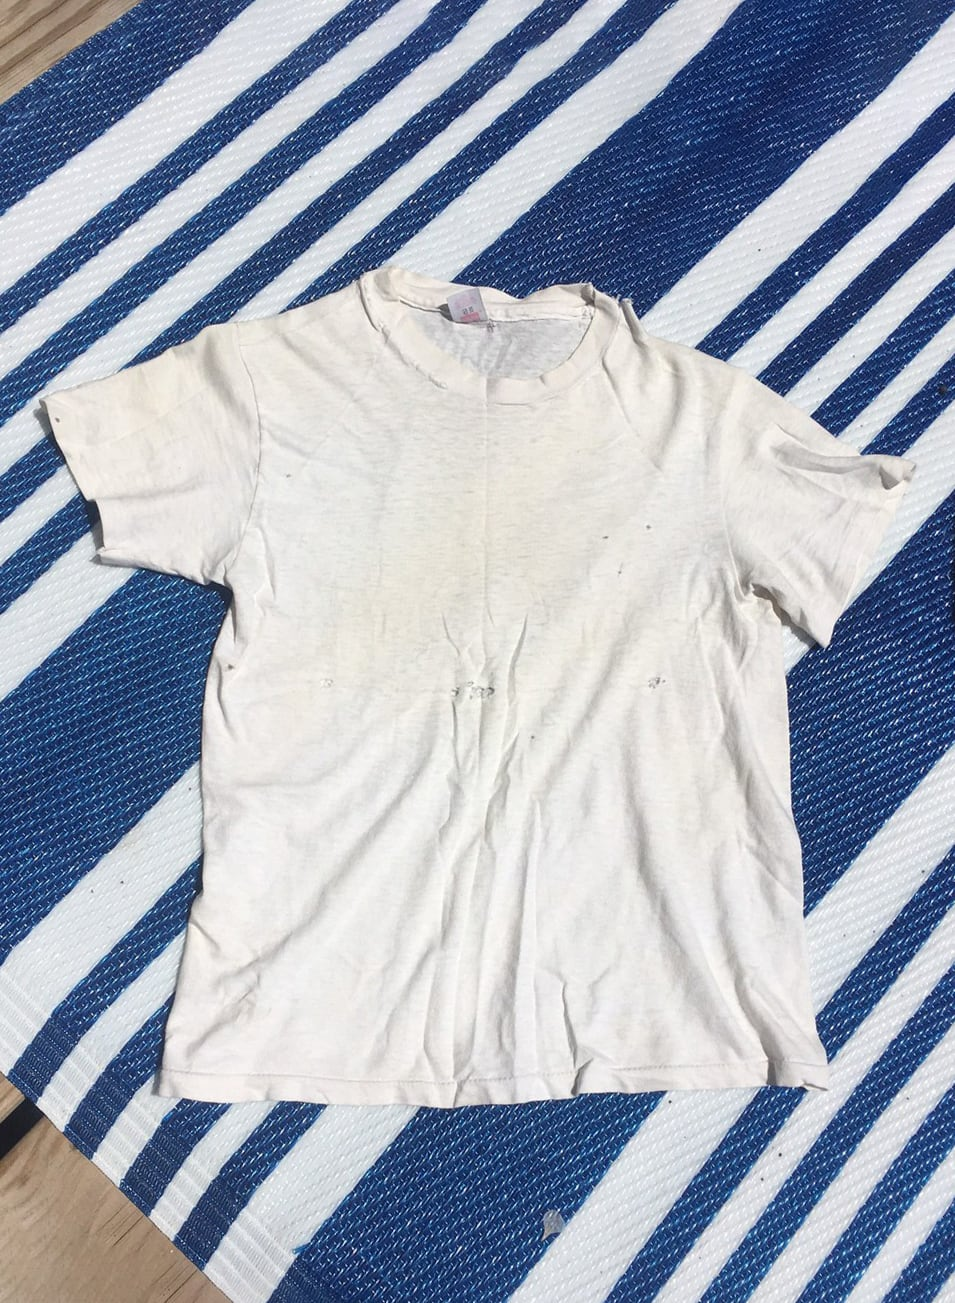 1960s Hanes t shirt single stitch 60s 50s 1950s buttery soft thin paper thin distressed super soft white XS S size extra small true vintage